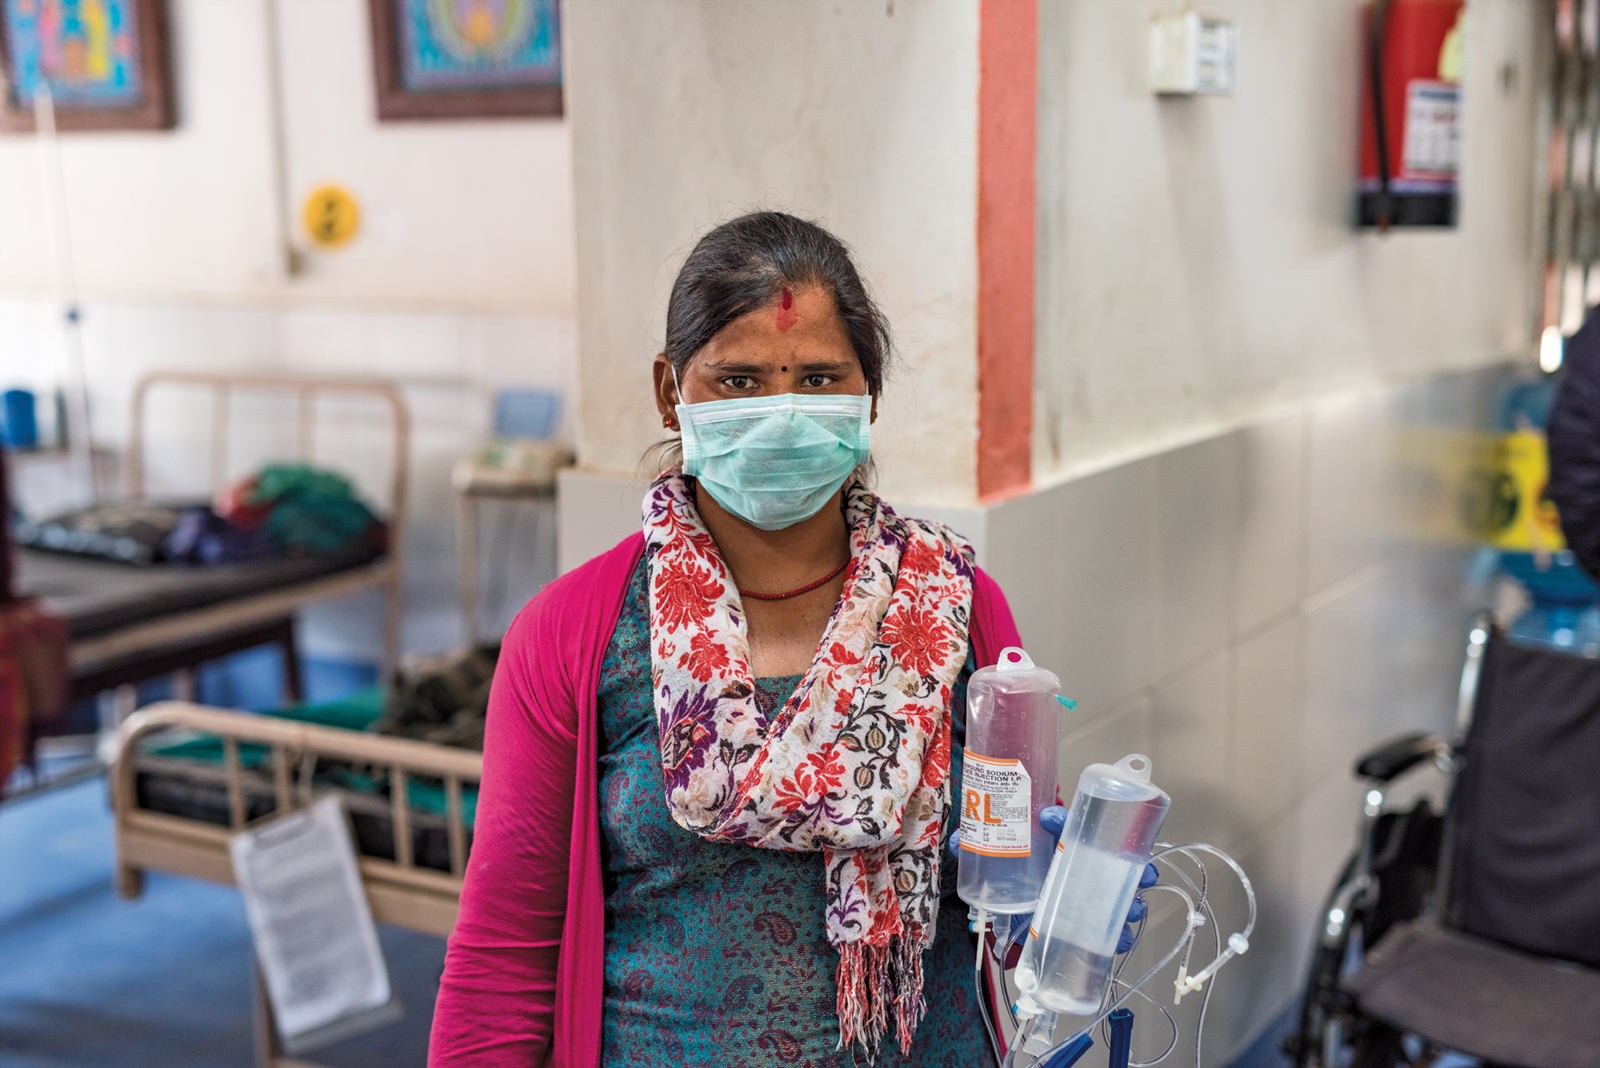 Female nepalese healthcare worker wearing an open, bright pink sweater, paisley teal shirt, white scarf with coral and purple flowers and a disposible mask stands in clinic holding two pouches of saline solution.